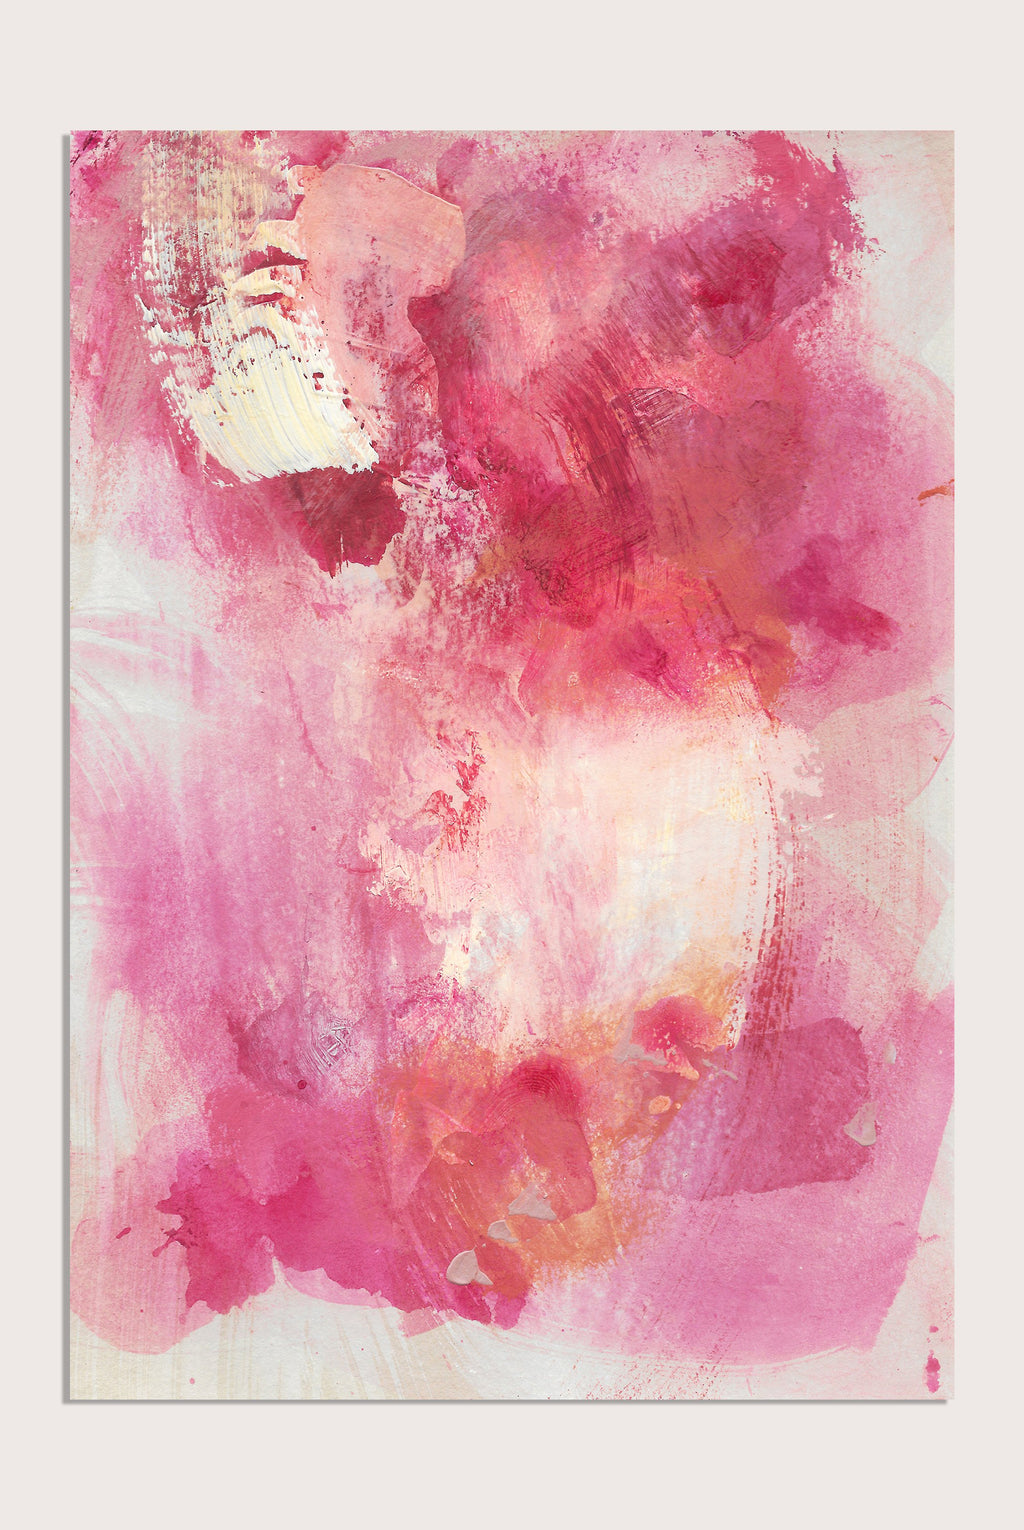 'Medina Marrakesh VI', an abstract painting by contemporary, woman artist Katherine Sheers